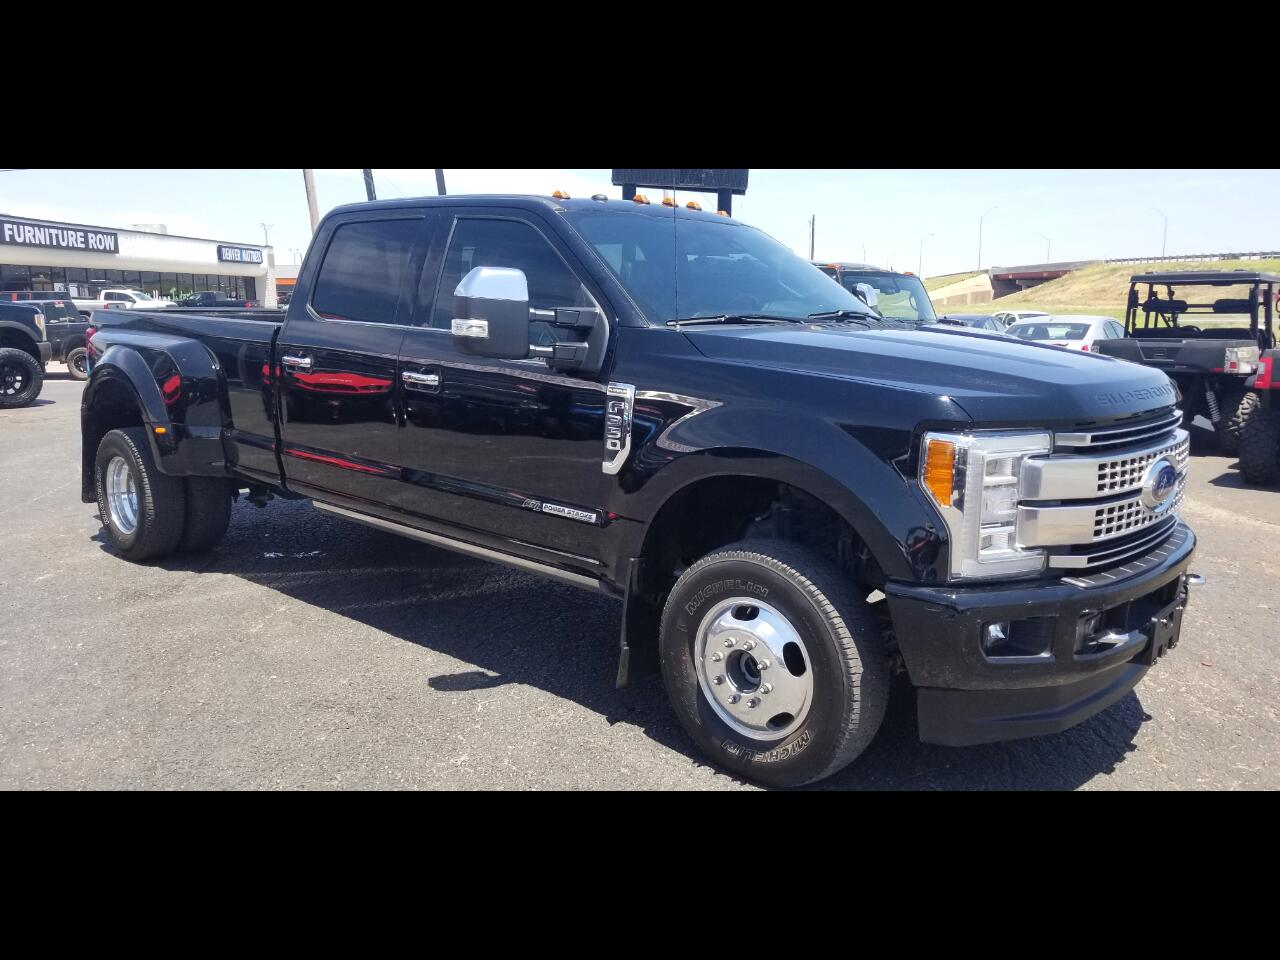 2018 Ford F-350 SuperCrew Platinum FX4 DRW